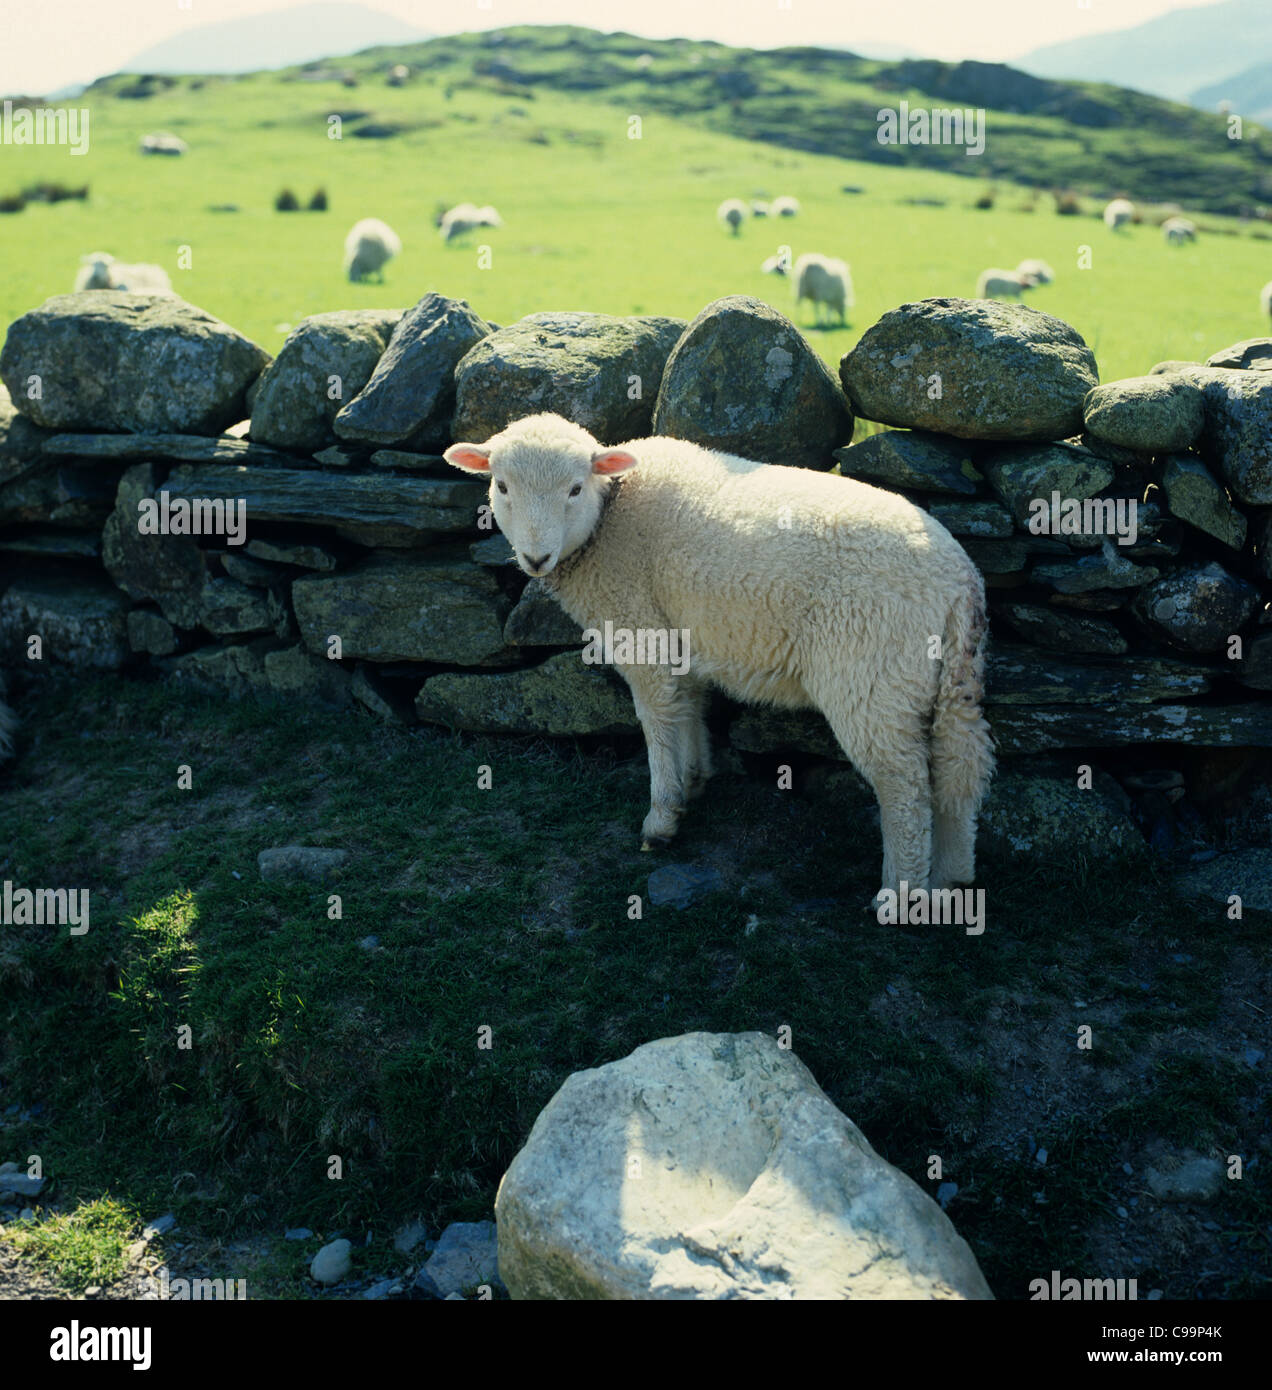 Welsh mountain sheep mise à l'abri de la lampe par un mur en pierre sèche dans la région de Snowdonia, Photo Stock